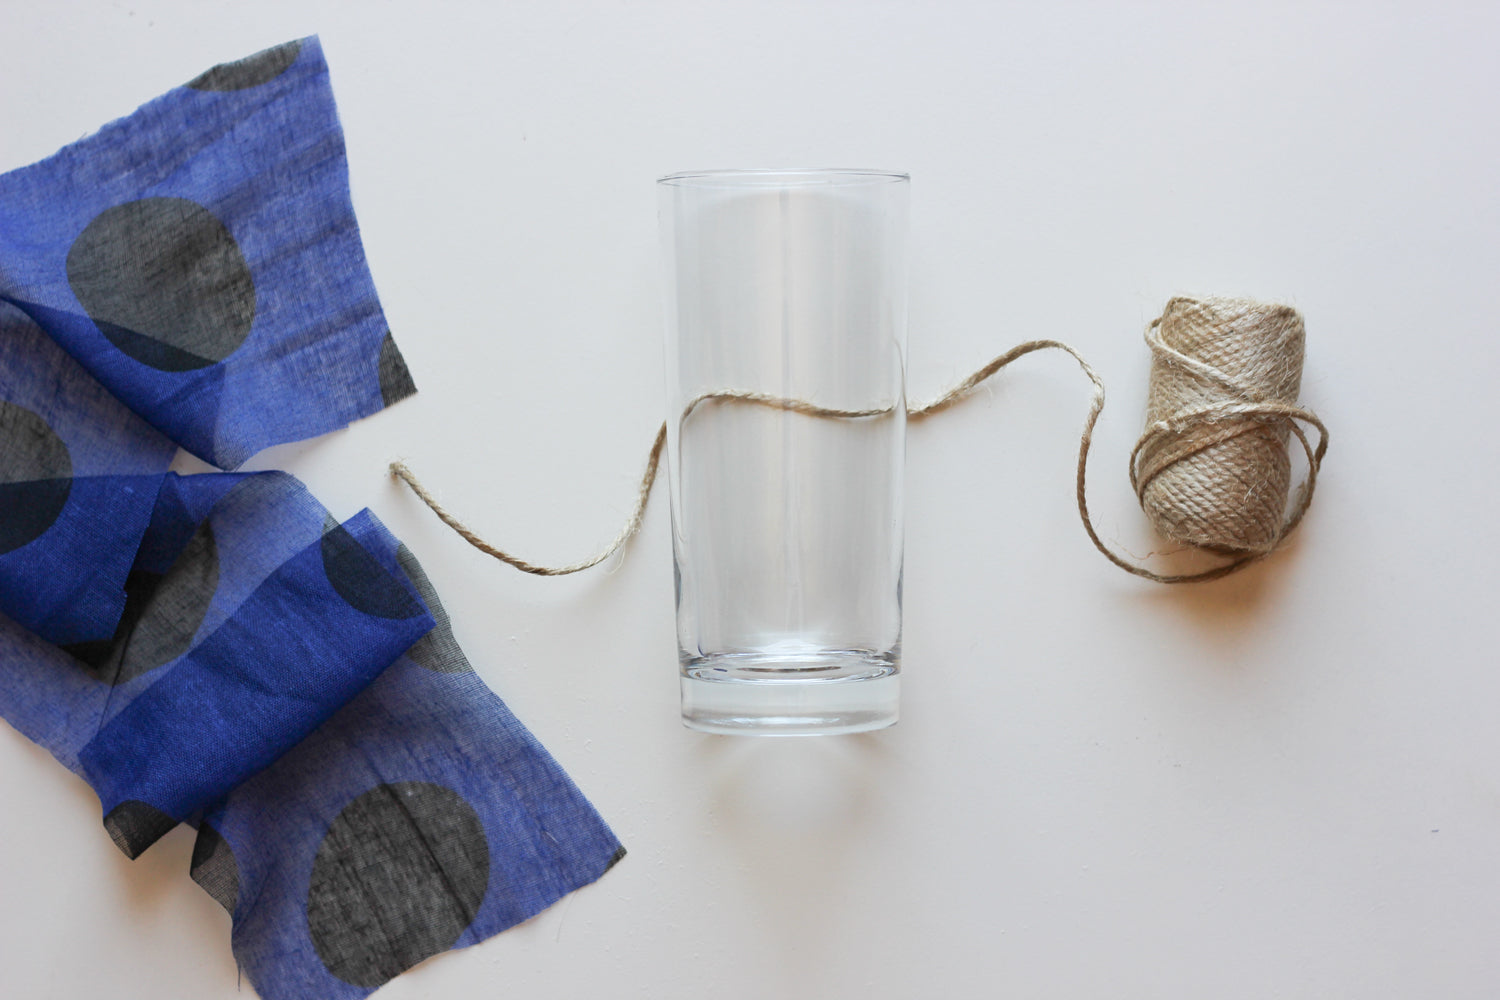 DIY Glass Napkin Step 2